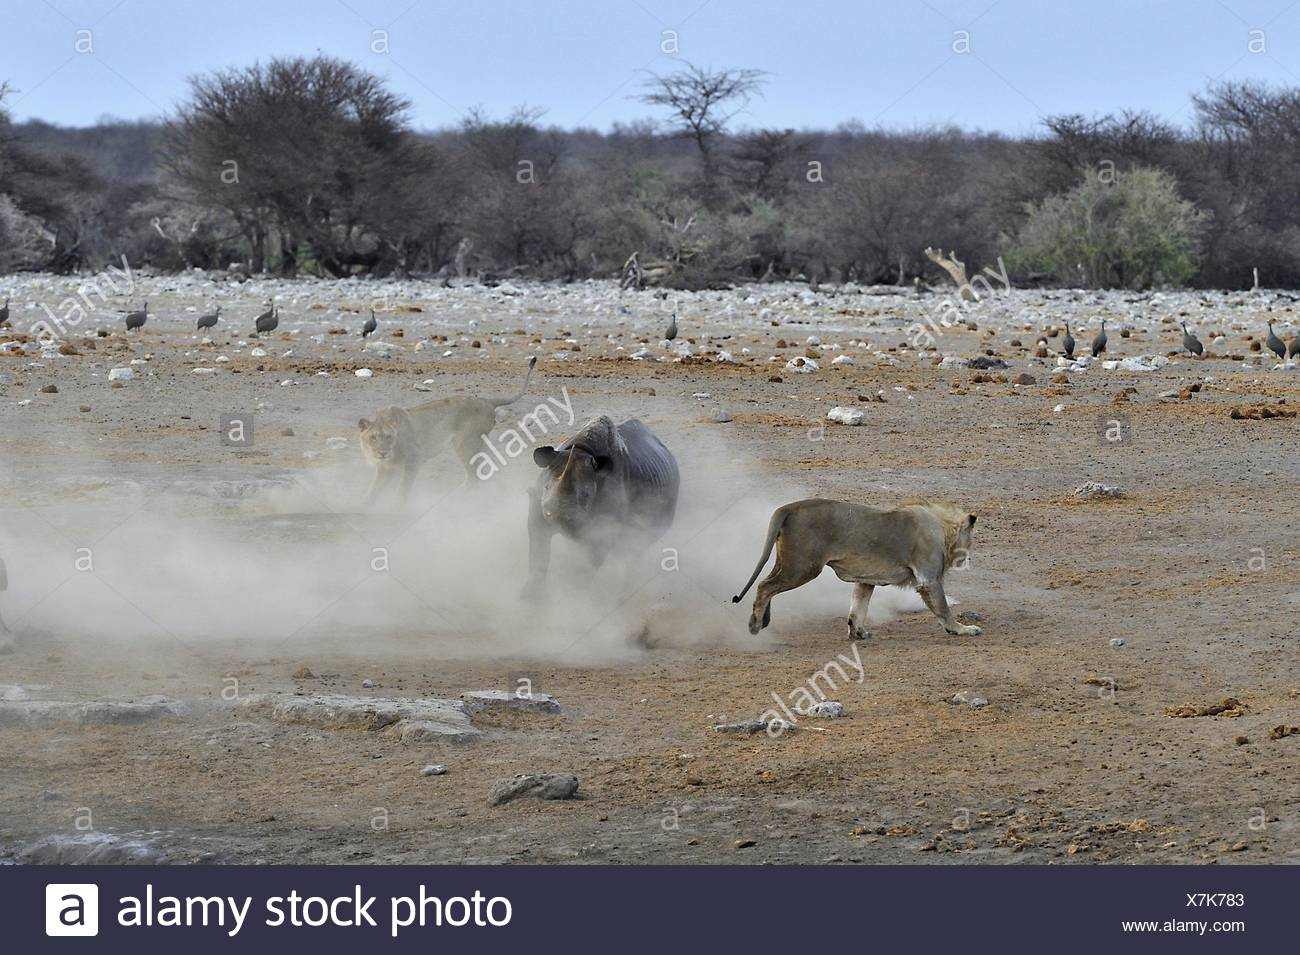 This Black Rhino has stumbled into a cavity and tipped into the water point. After many difficulties given the apic submerged Stock Photo